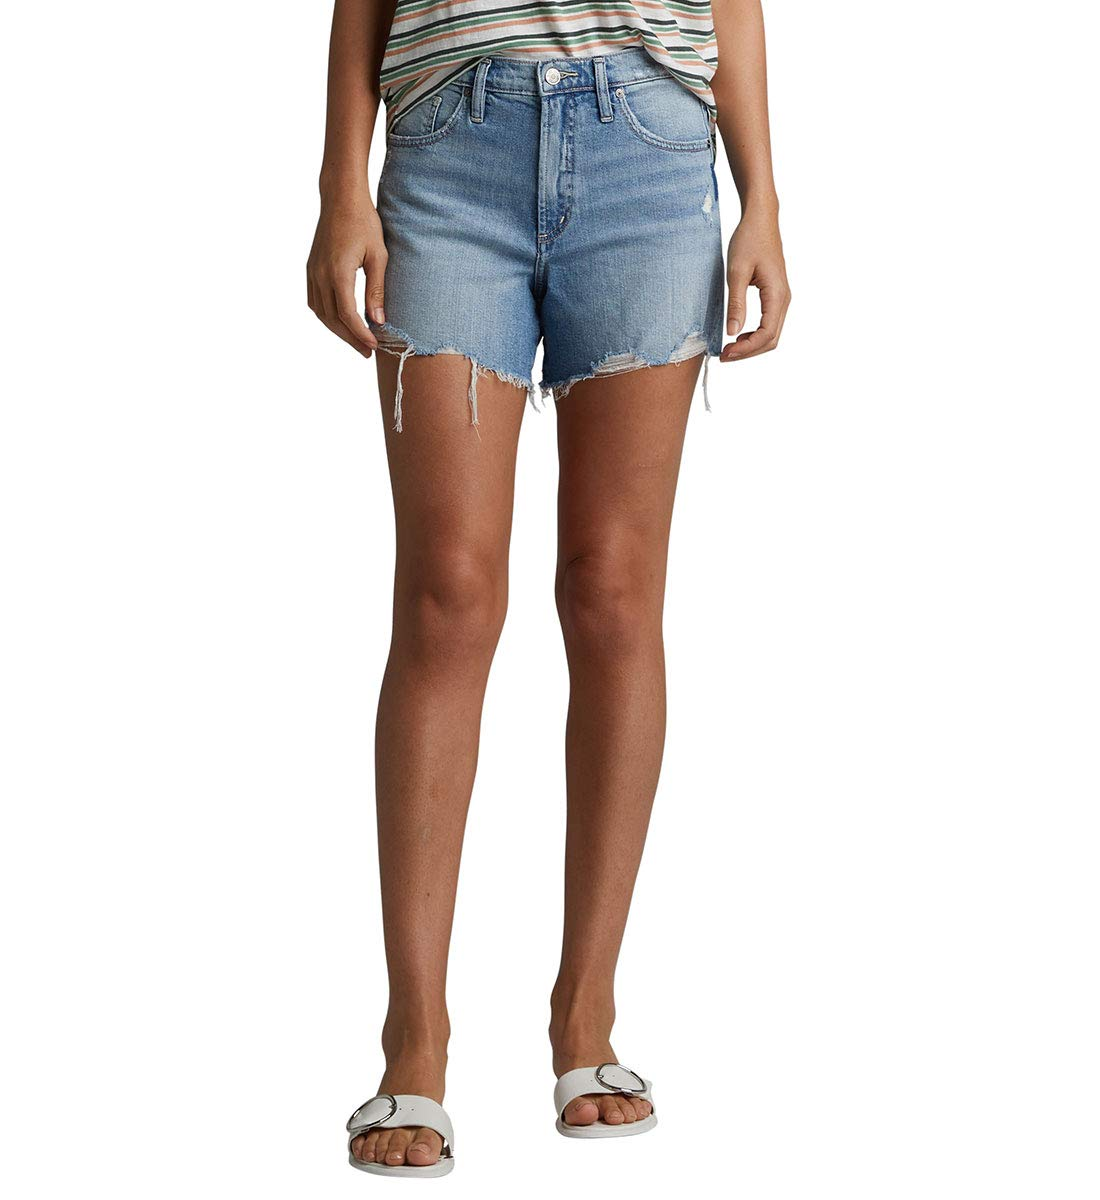 Silver Jeans Co. Women's Frisco Vintage High Rise Shorts, True Wash, 30W x 4L by Silver Jeans Co.